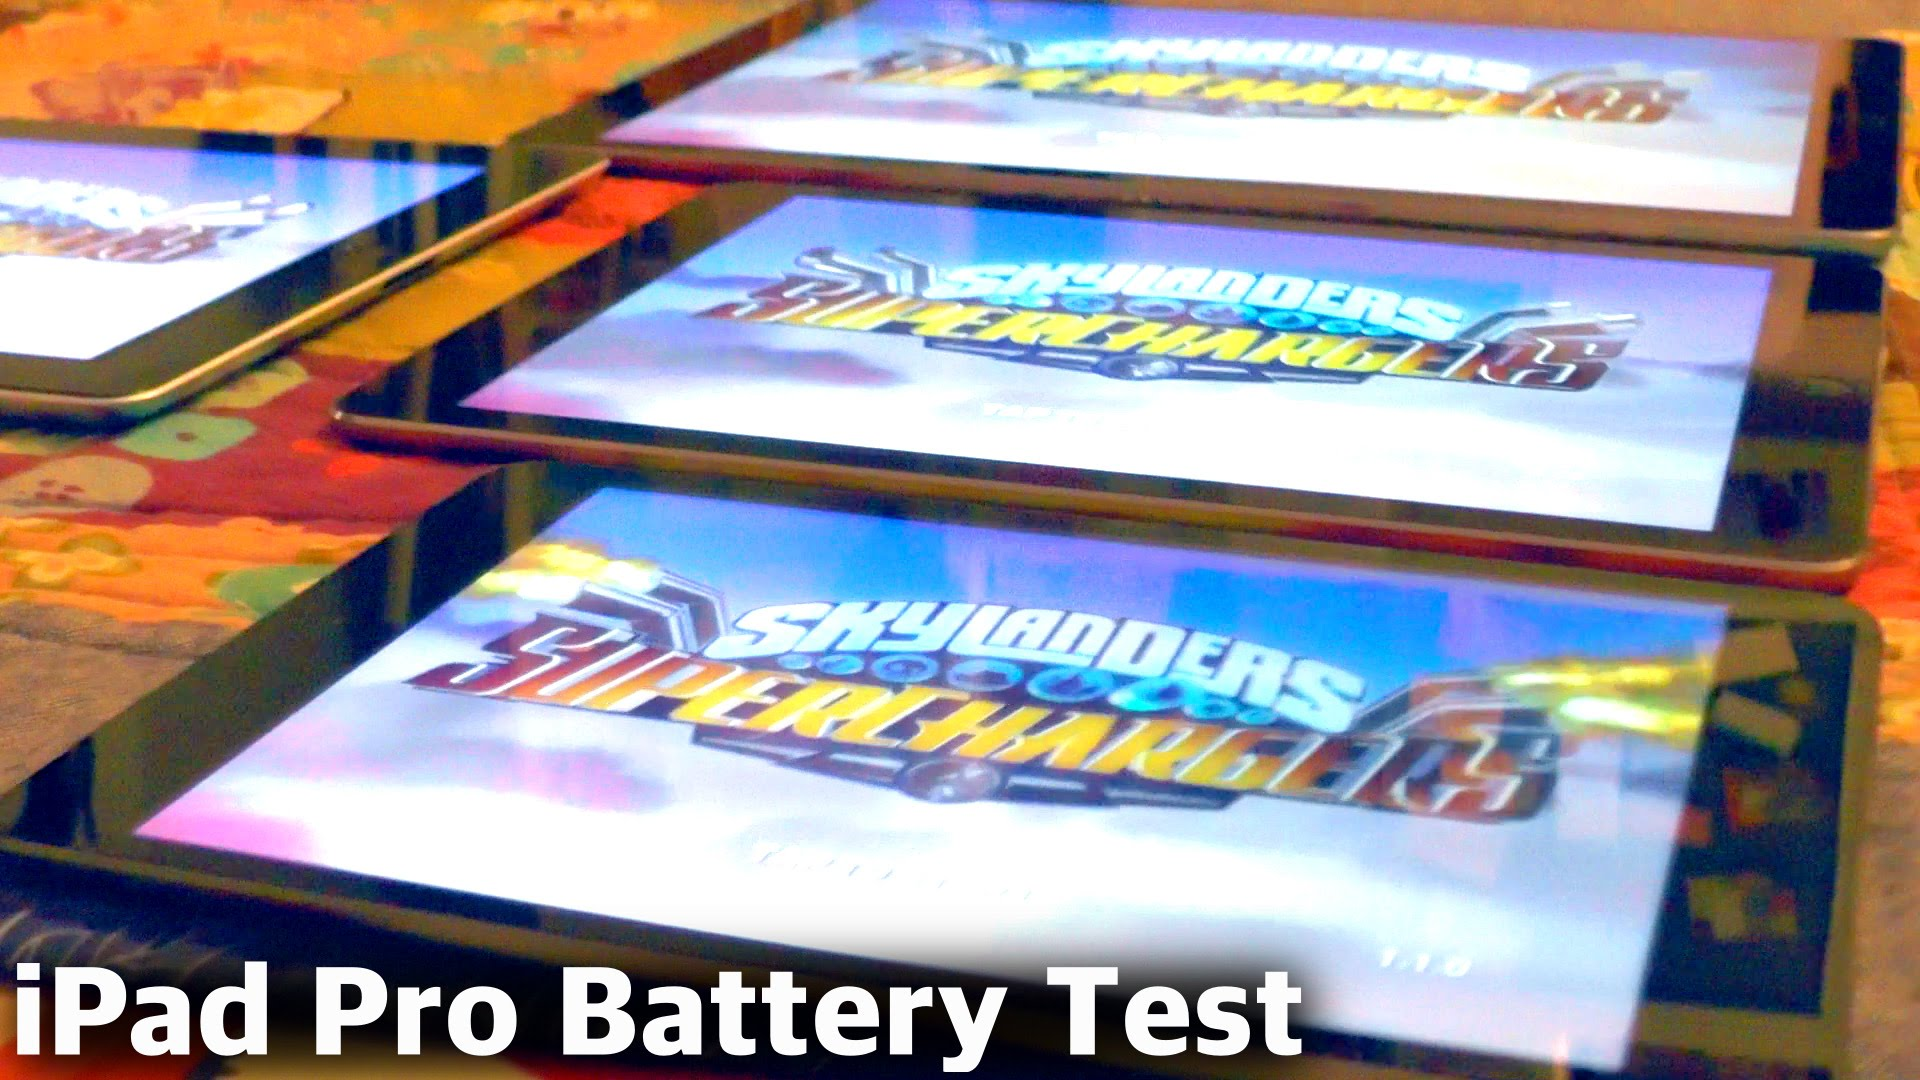 iPad Pro Battery Test vs iPad Air 2, iPad Mini, iPad 3